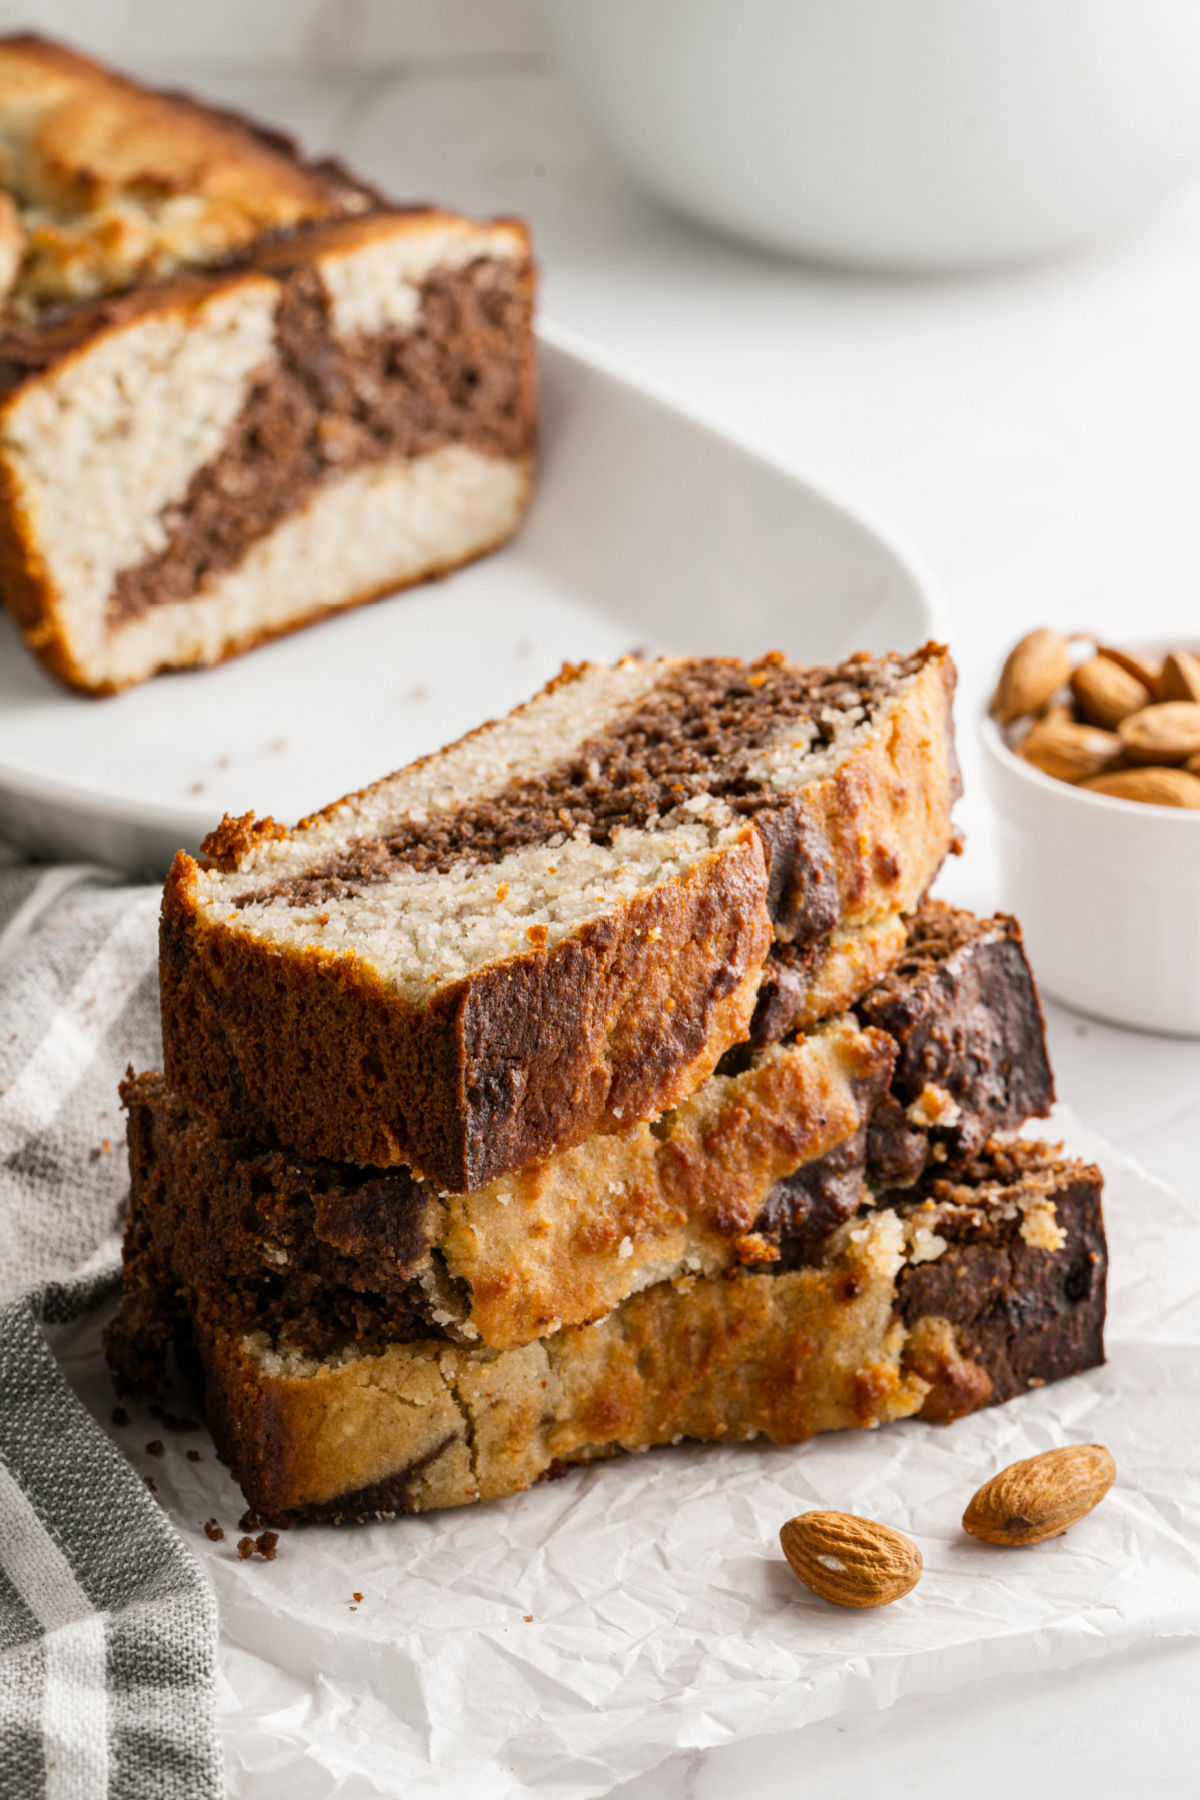 Three slices of sugar free banana bread stacked on plate.